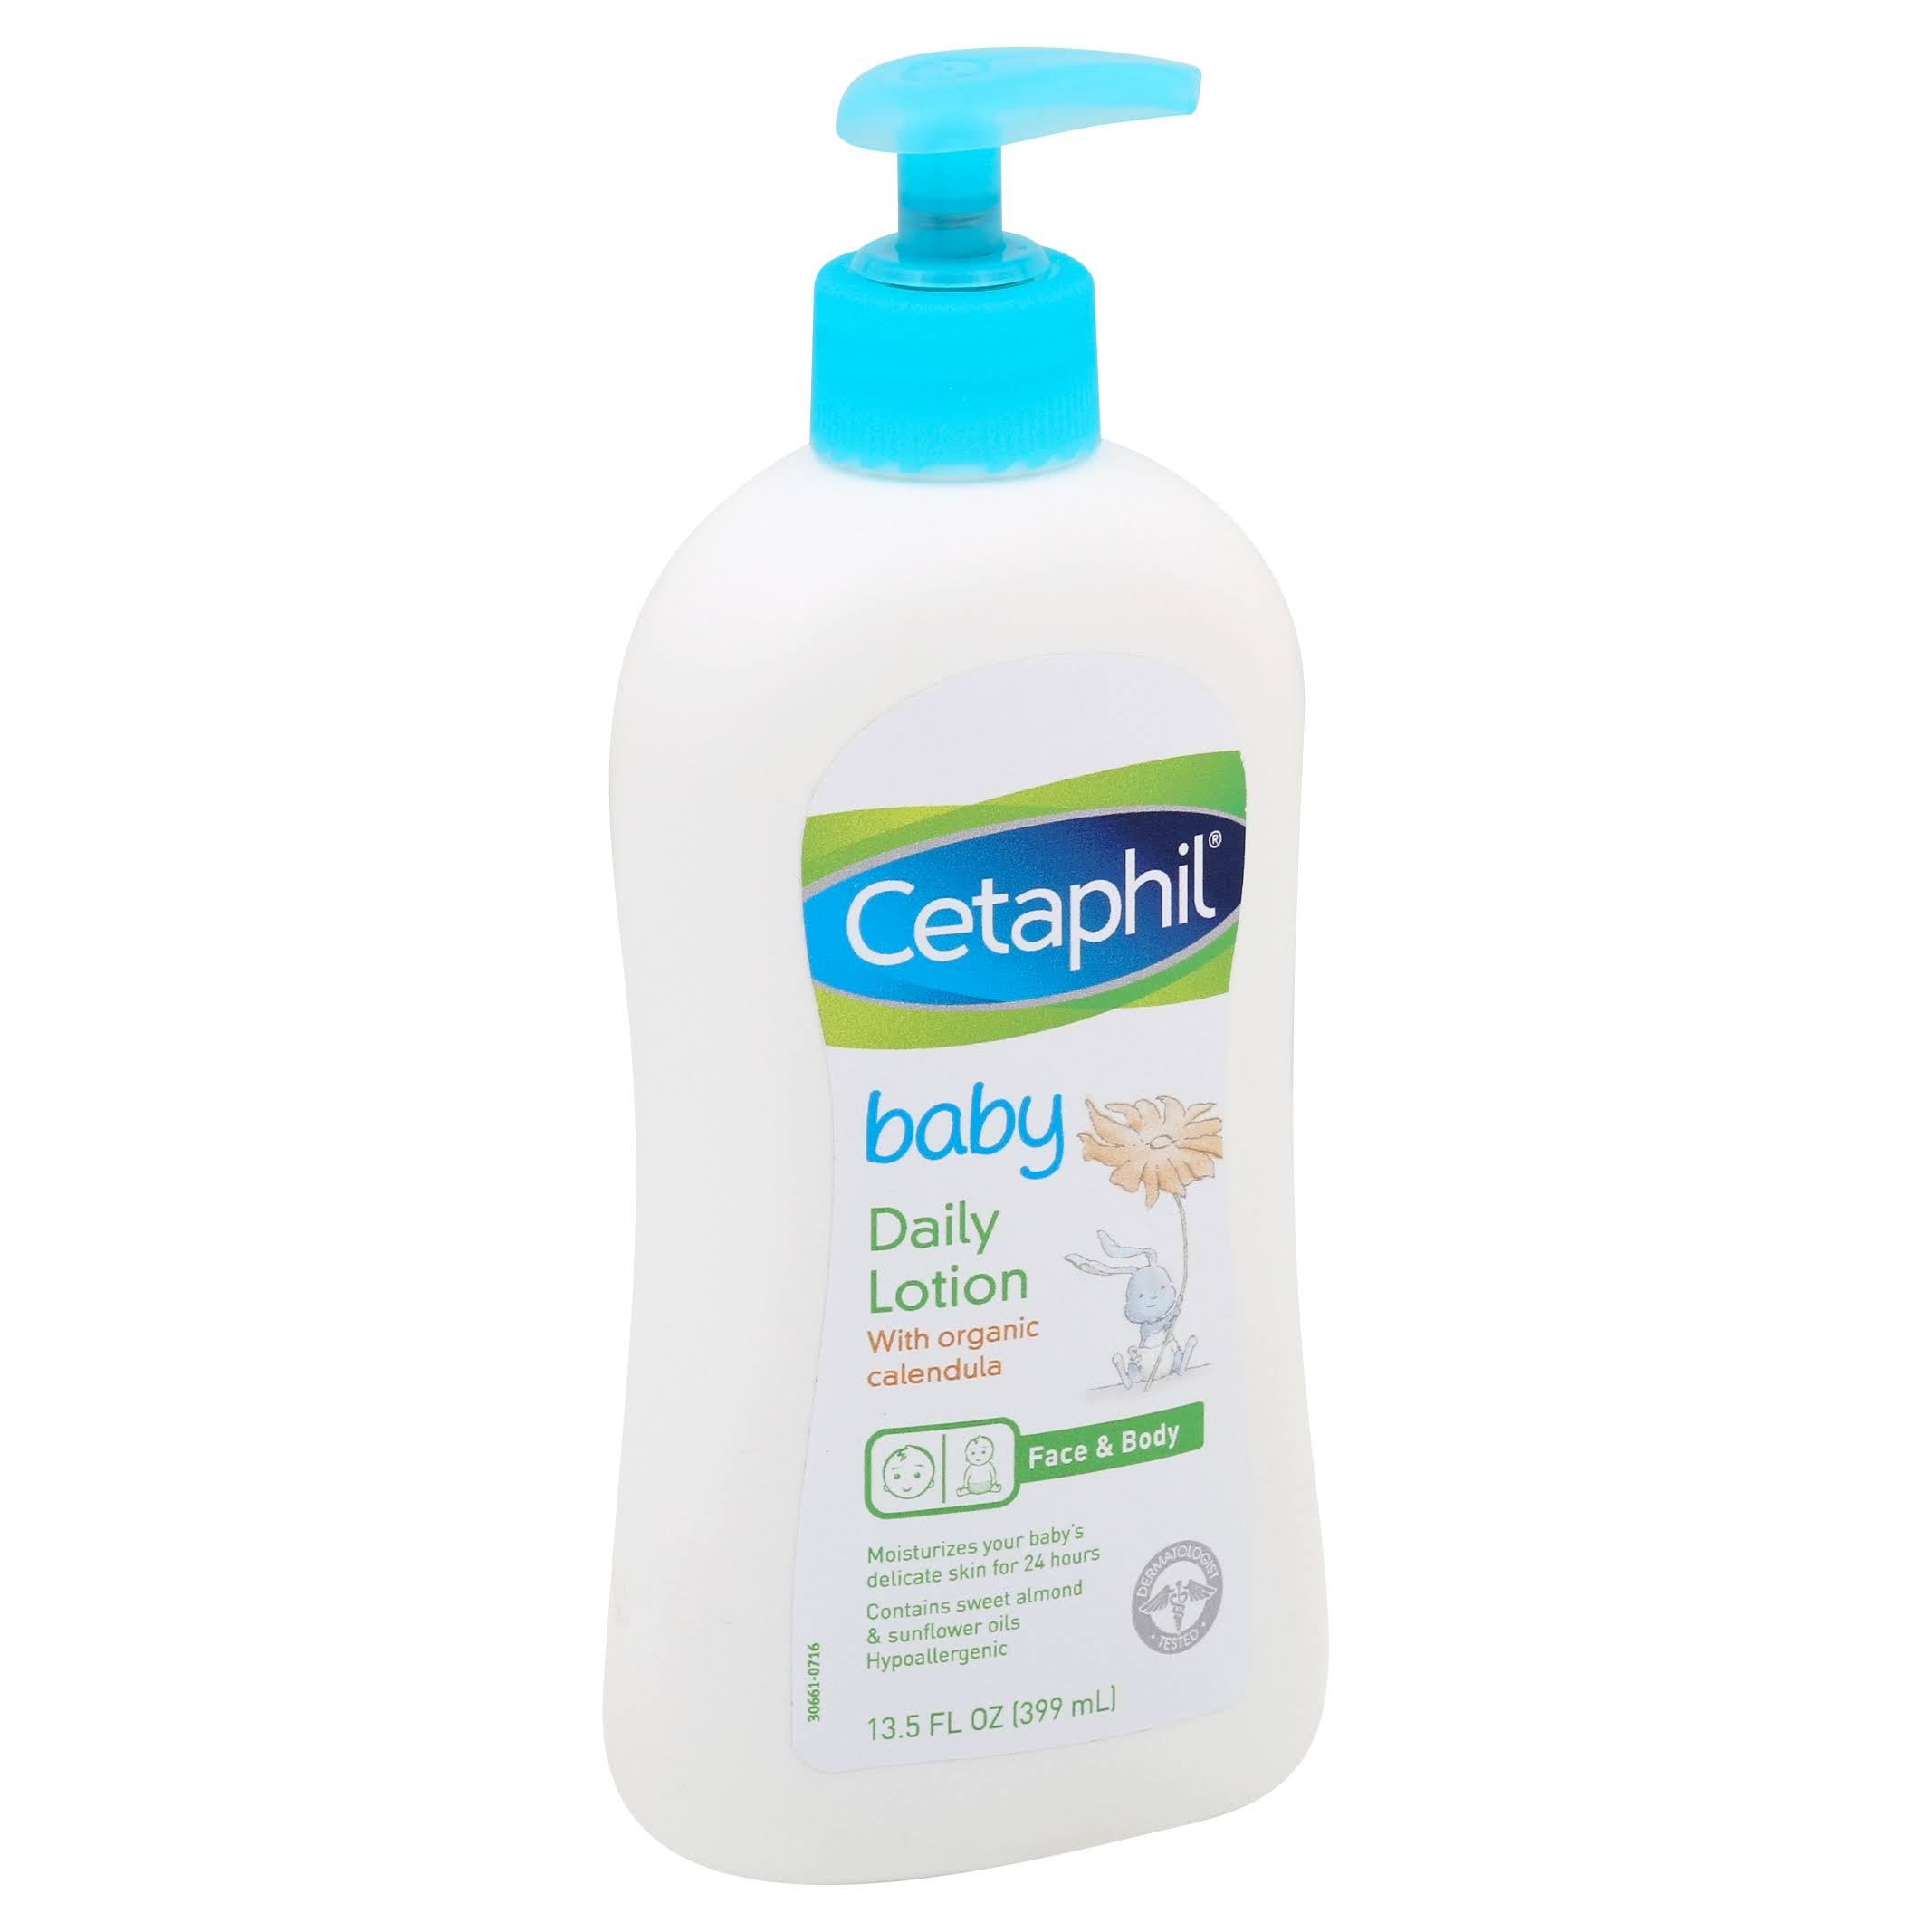 Cetaphil Baby Daily Lotion with Organic Calendula - Sweet Almond Oil and Sunflower Oil, 400ml